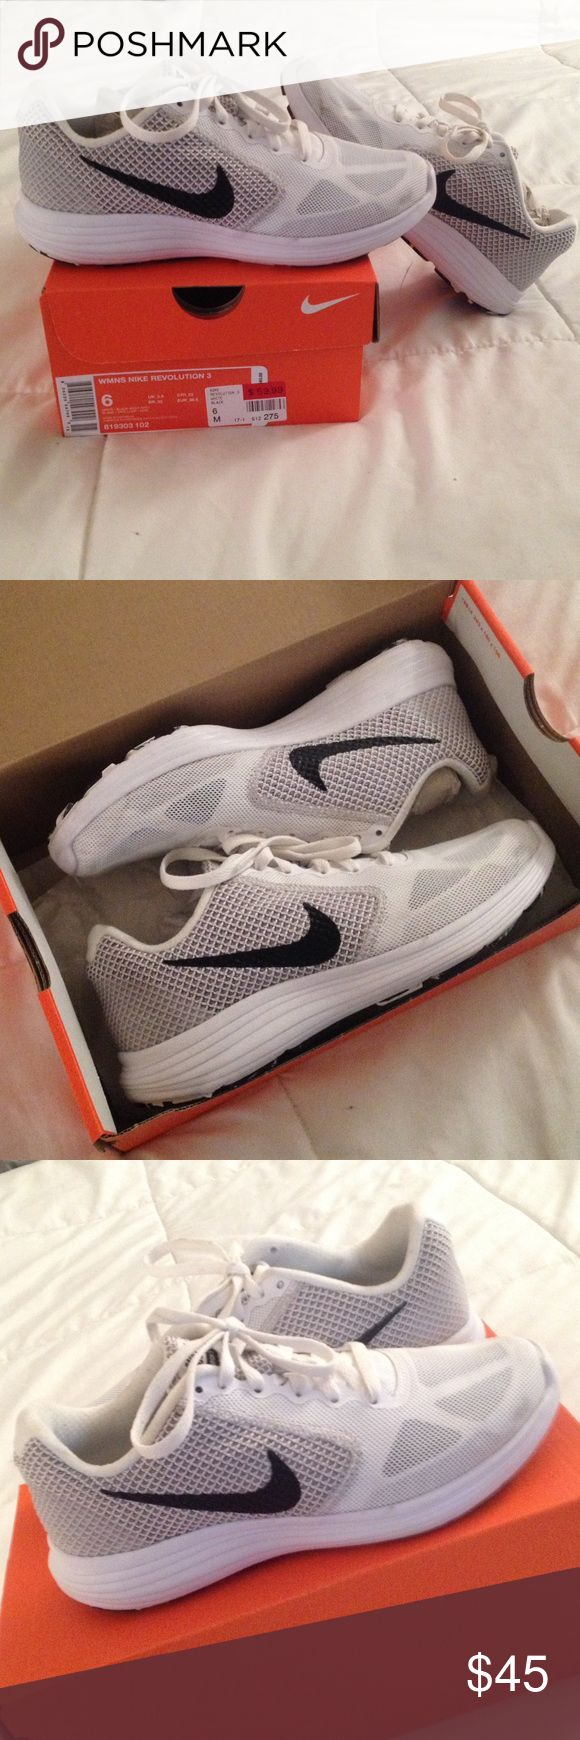 FINAL PRICE!😘WMNS NIKE Revolution 3 Size 6M. Purchased at Broadway Shoe Warehouse in Tennessee. Worn only twice. White with light grey and black Nike checks. Comes with box. Fits true to size! Nike Shoes Athletic Shoes